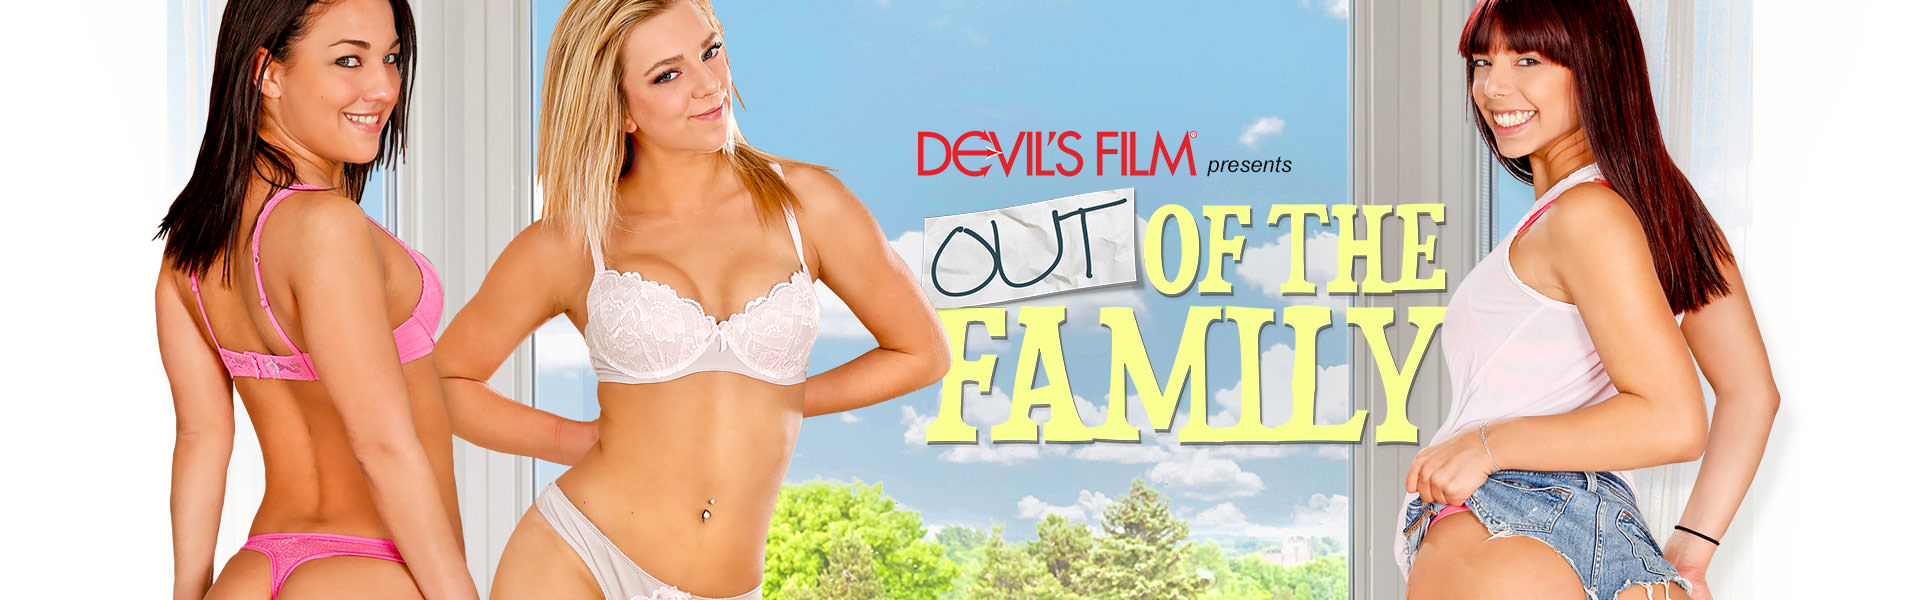 Devils's Film presents Out Of The Family